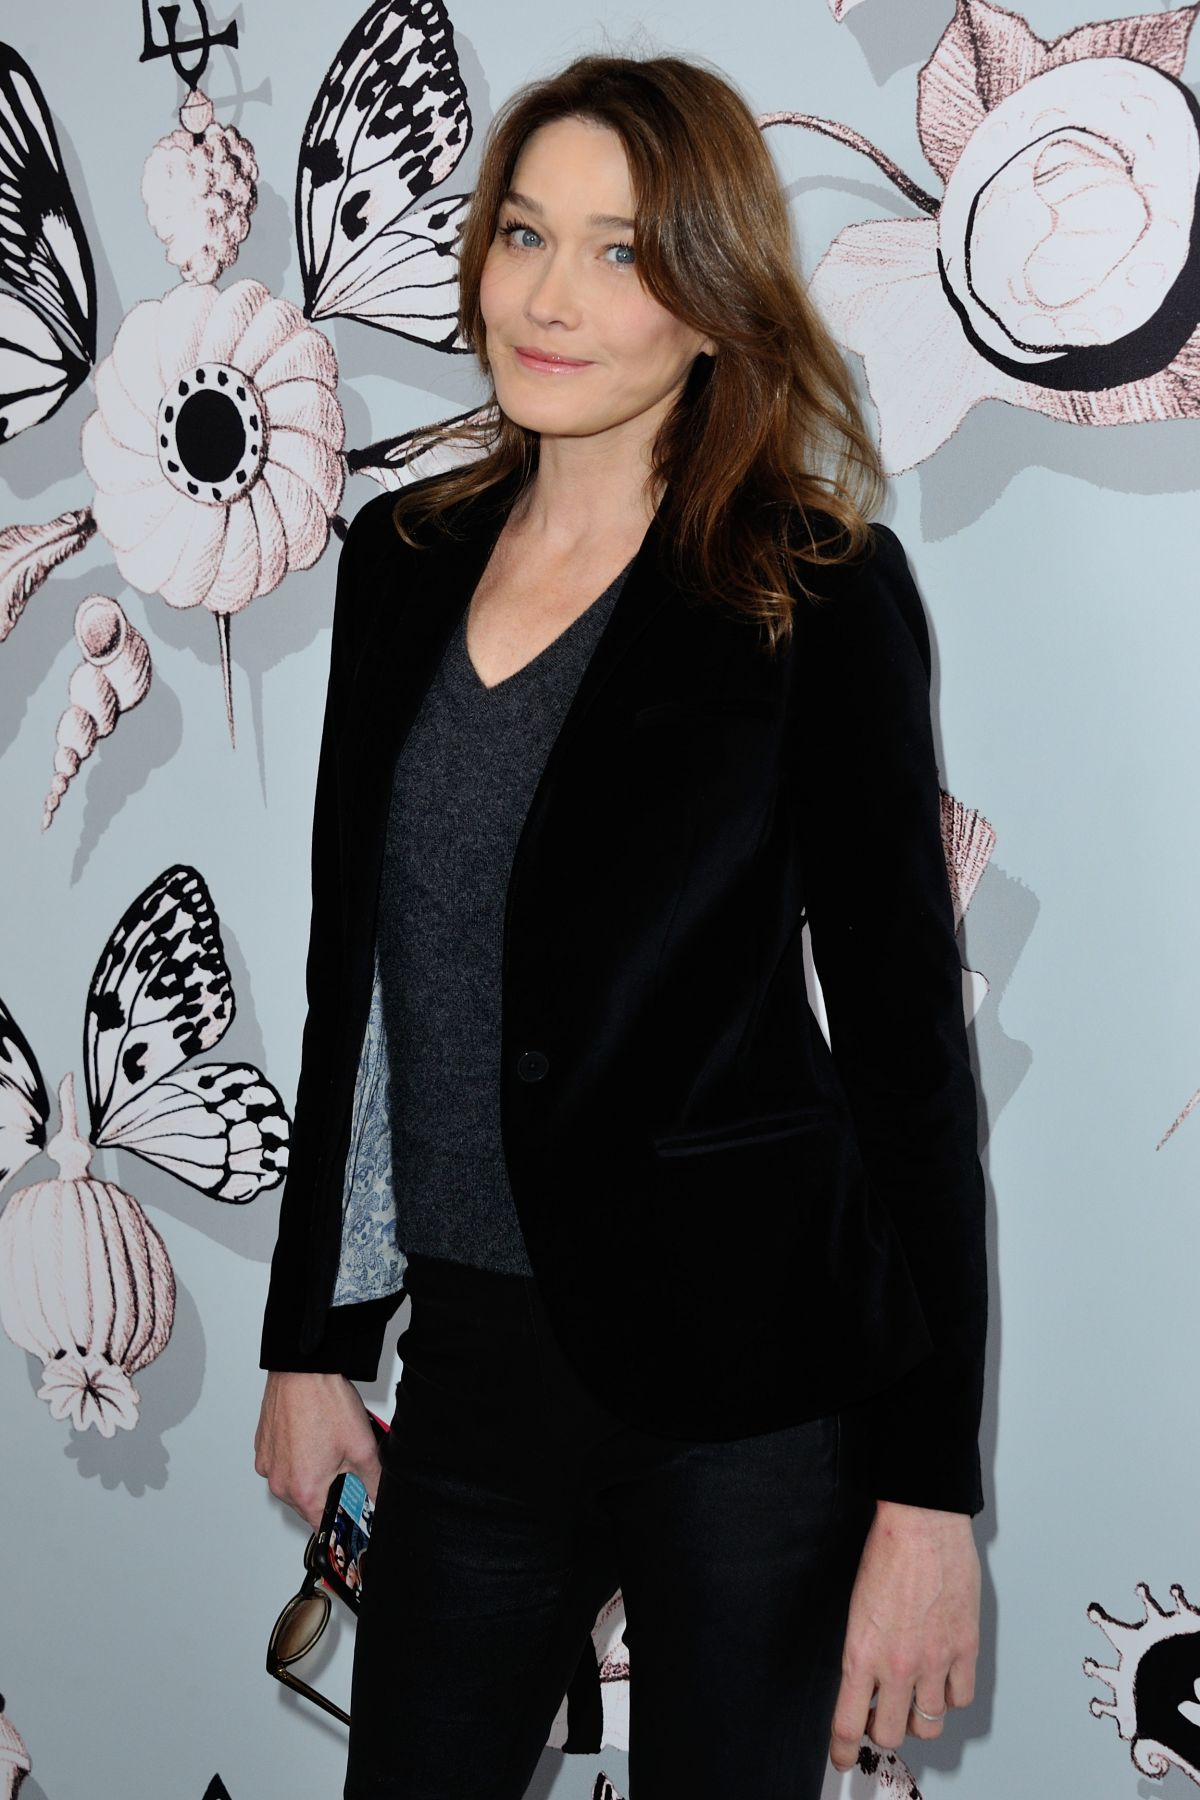 CARLA BRUNI at Schiaparelli Fashion Show in Paris 01/25/2016